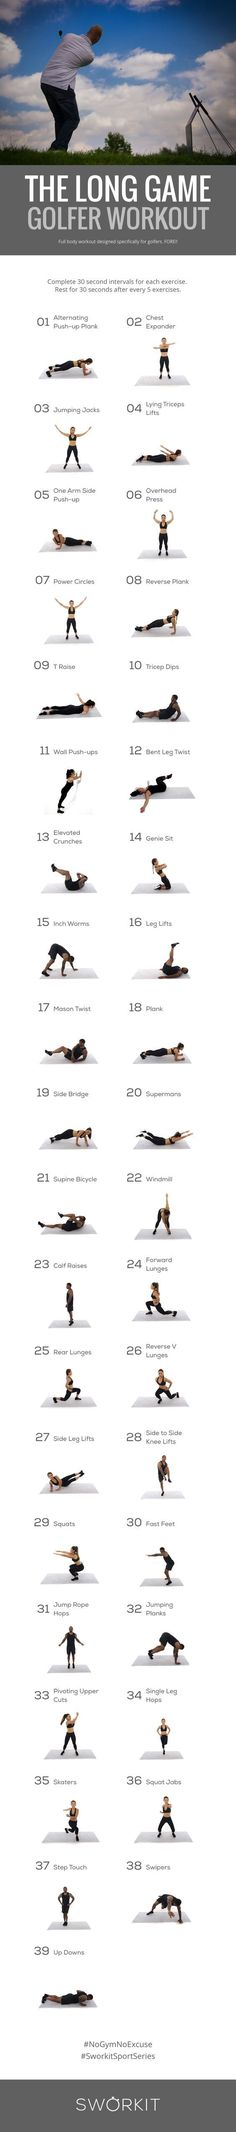 Golfer custom workout that helps you increase overall strength and flexibility, and helps you reach your full potential. More Golf Quotes, Lessons, and Tips here at #lorisgolfshoppe